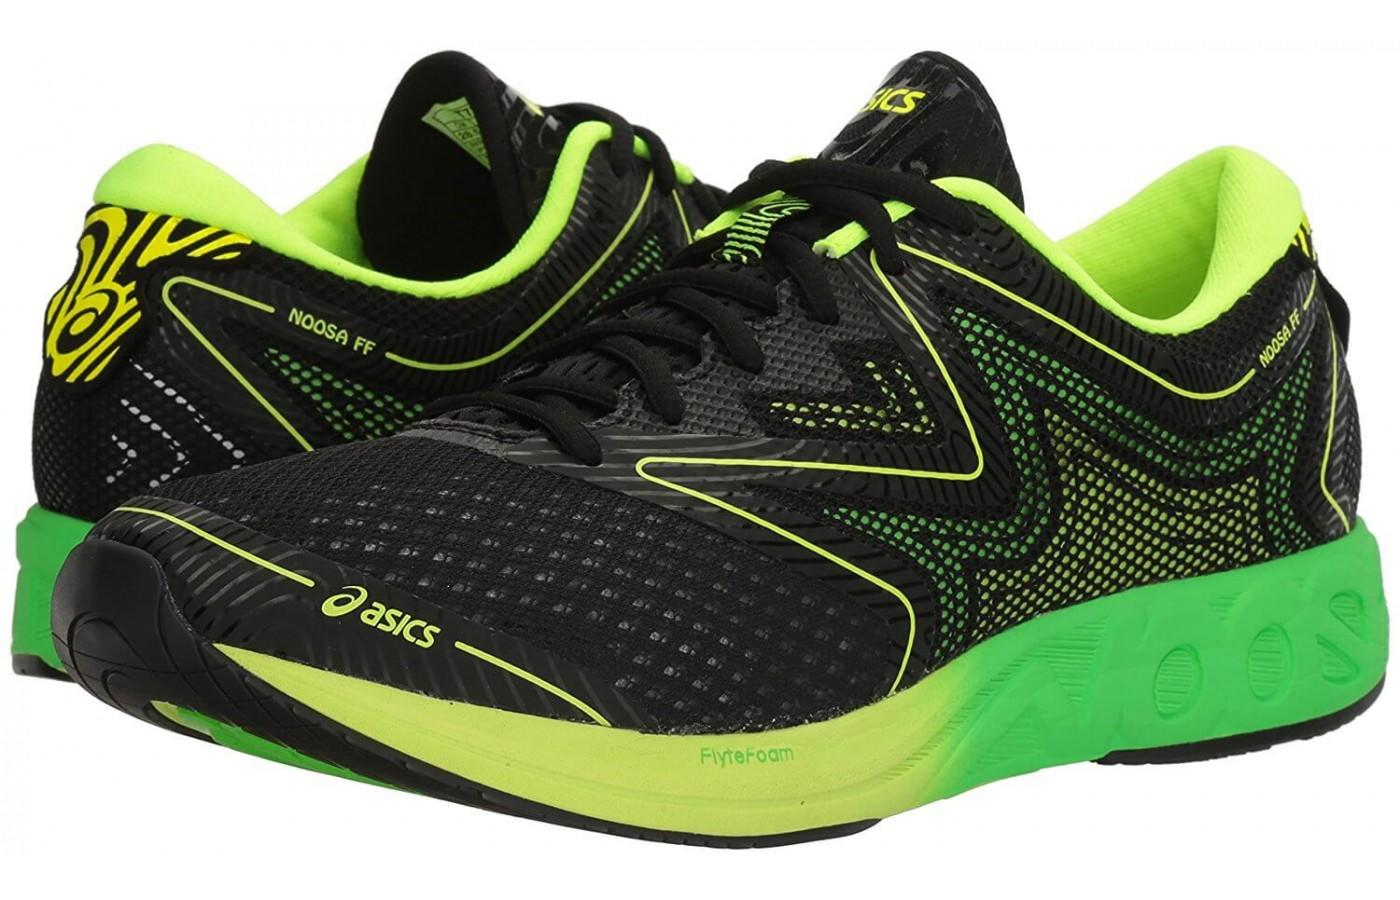 the Ascis Noosa FF is a versatile and comfortable running shoe that are suitable for both long and short runs